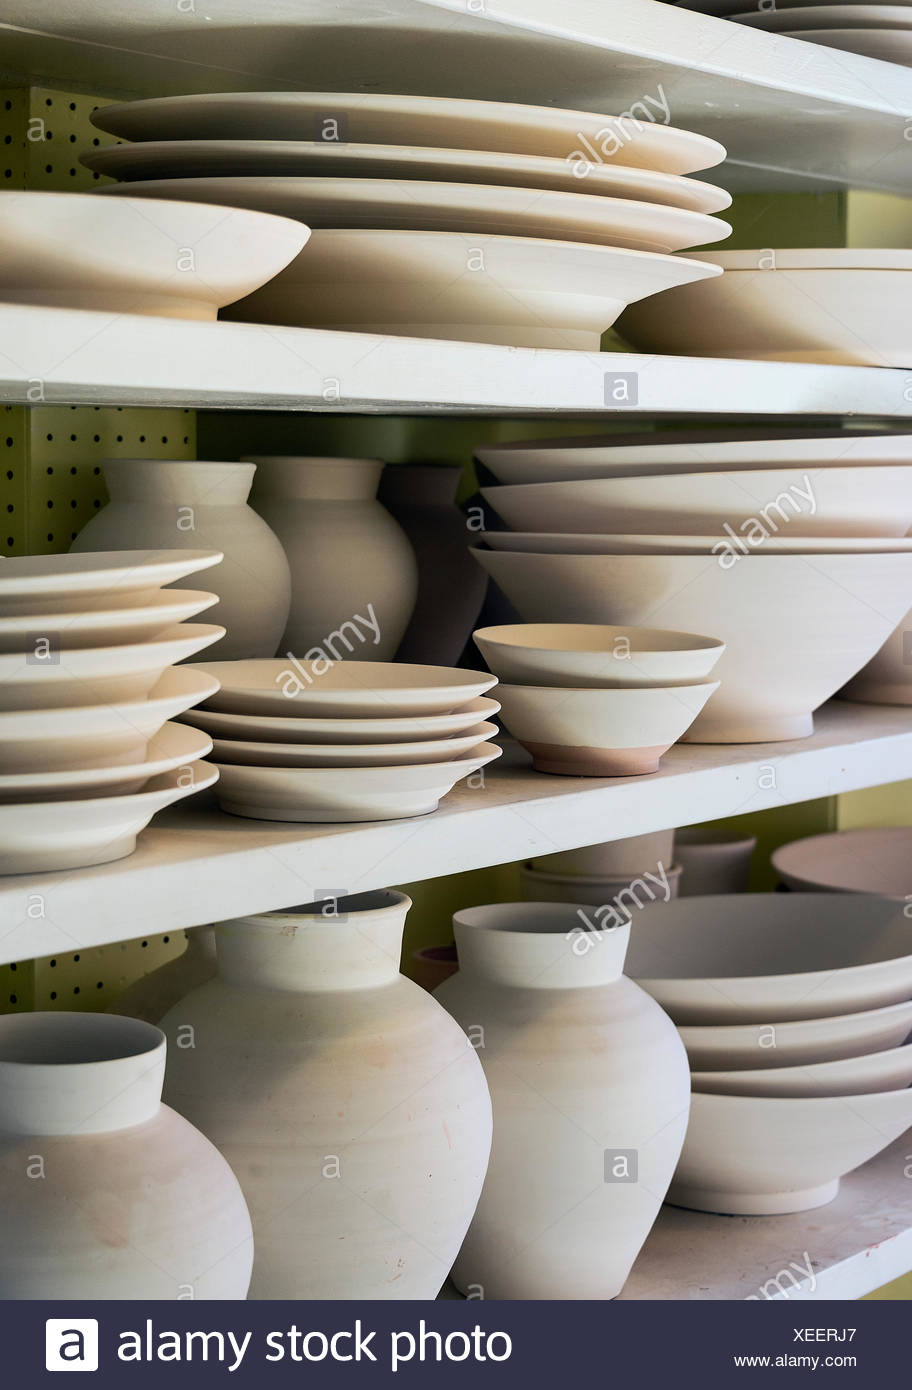 Unglazed earthenware in a pottery studio, Vermont, USA - Stock Image